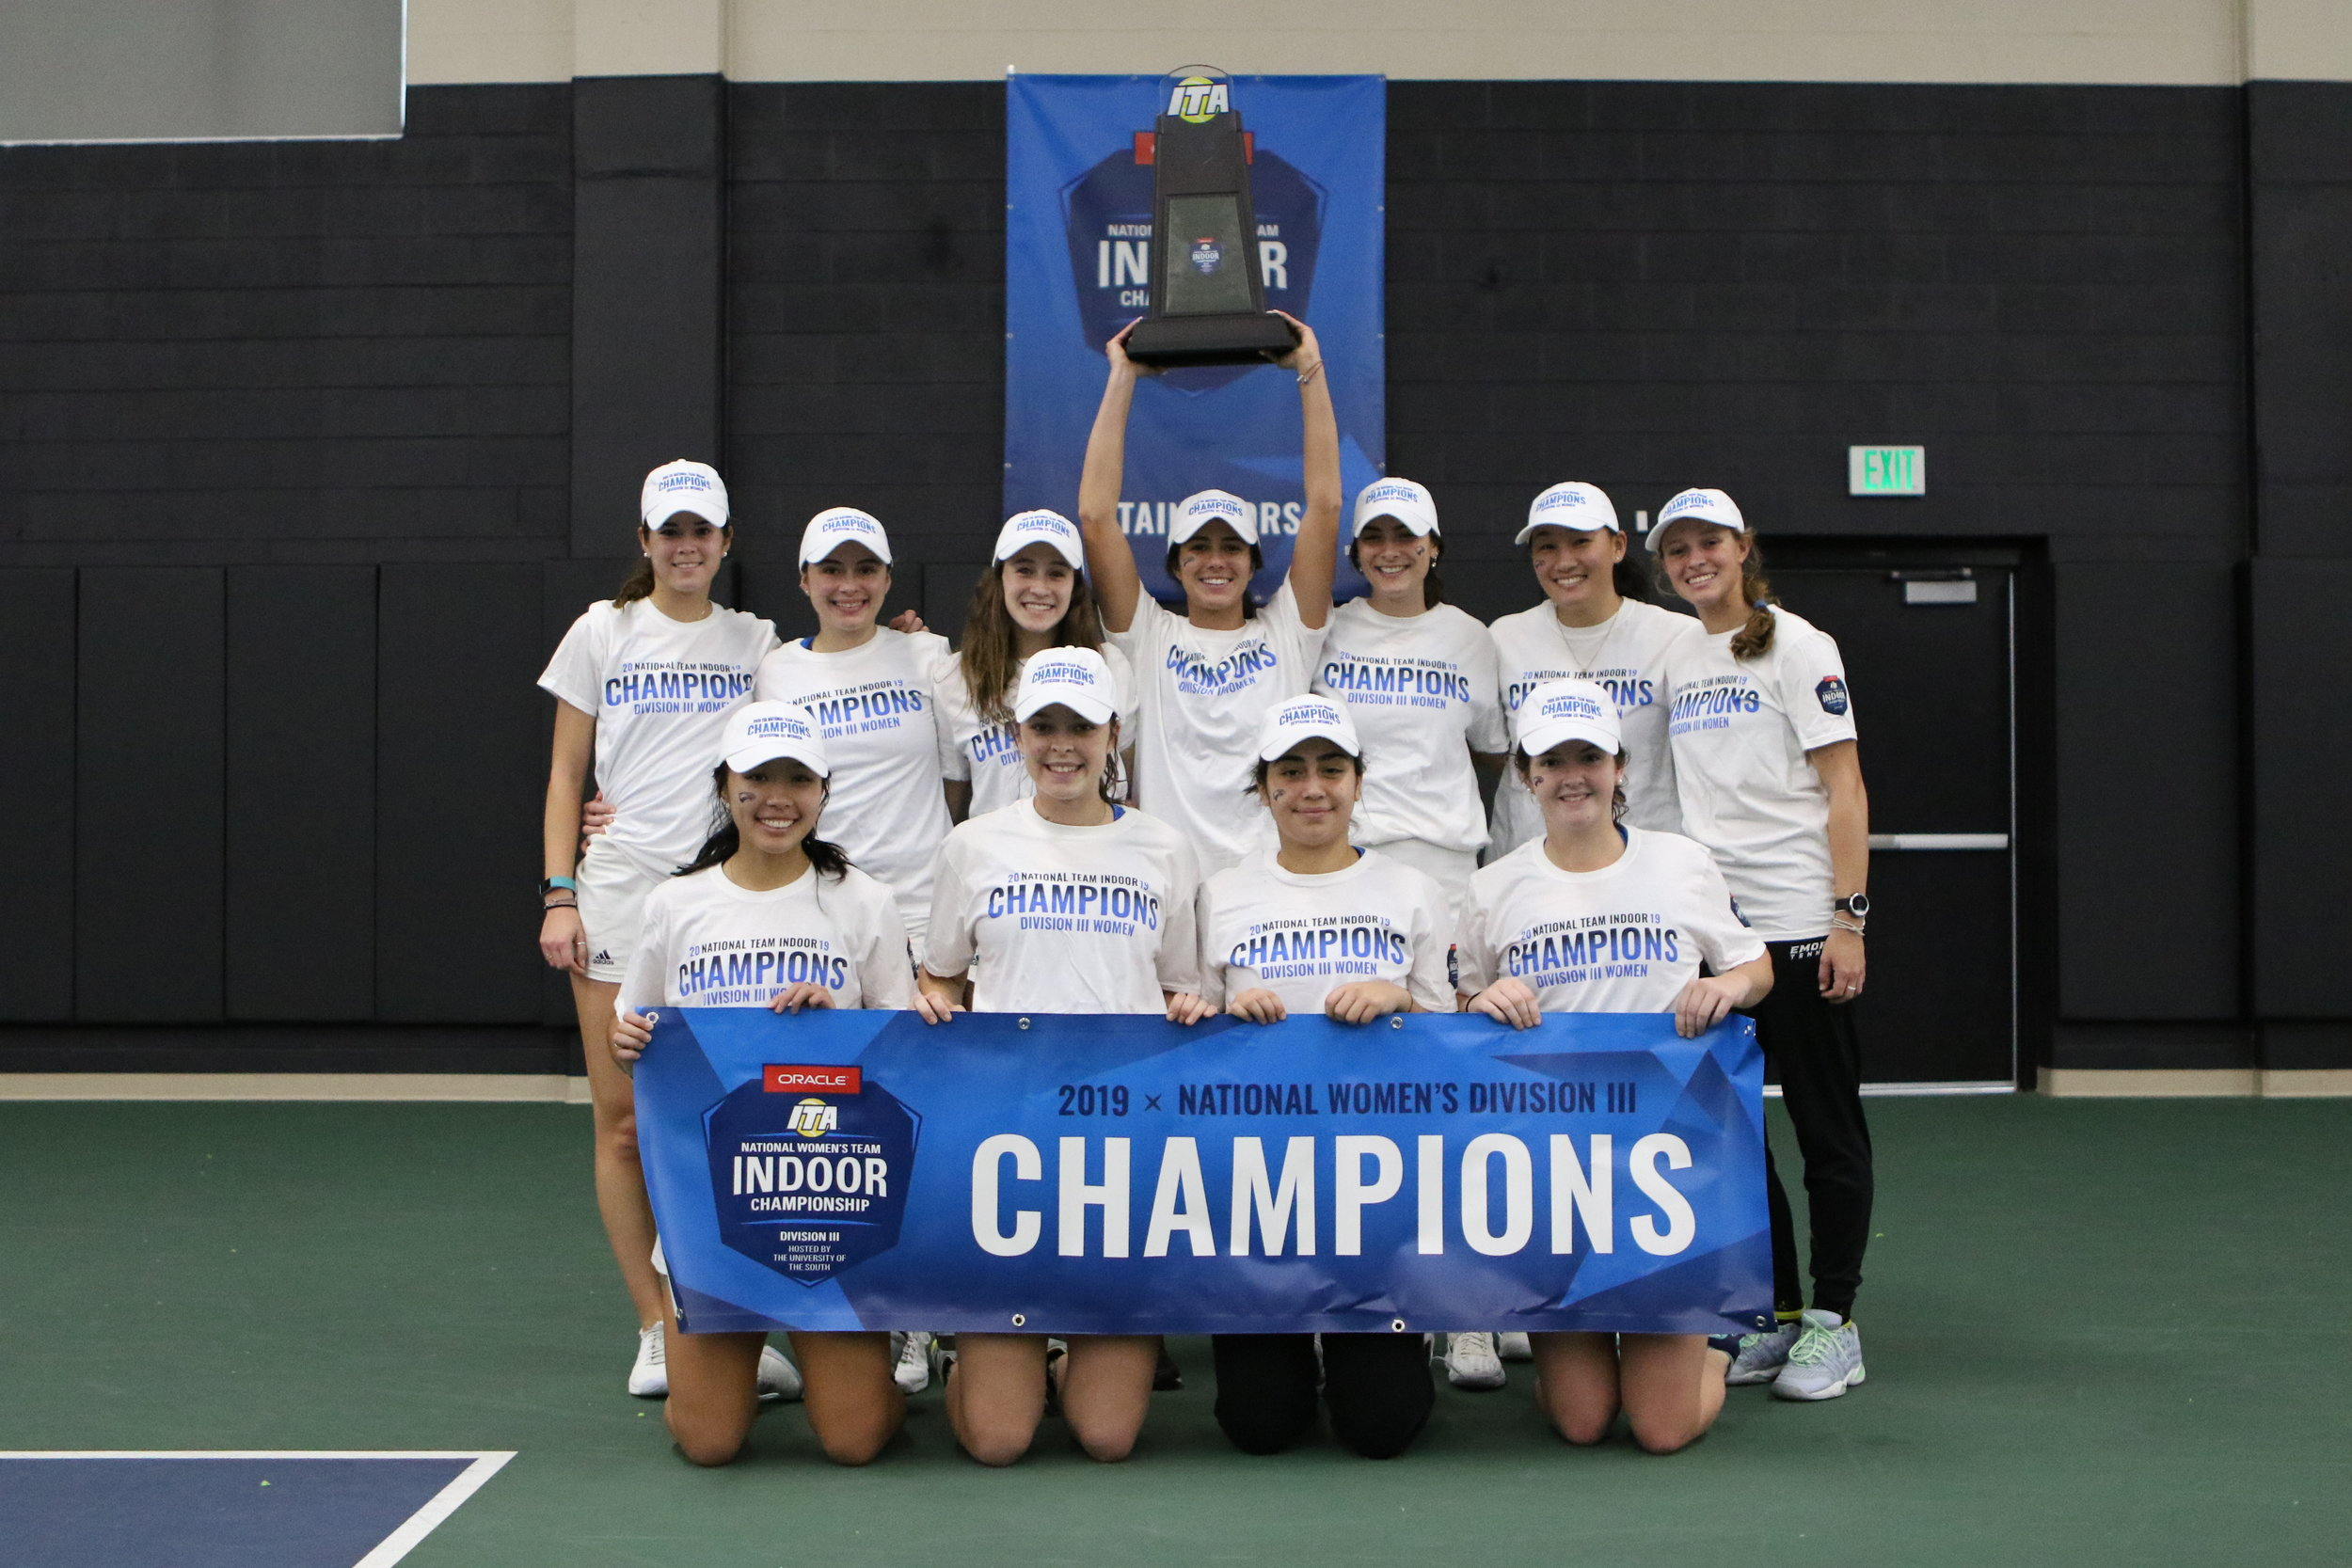 """The Emory University Women's Tennis Team beat Claremont-Mudd-Scripts College at the conclusion of the ITA Indoor Championship season this past weekend. The best 8 of the women's division III programs met in Nashville, Tennessee to compete for the crown and there was no surprise on seeding with Claremont-Mudd-Scripts holding the top spot and Emory a close second behind.  Both teams cruised to the finals with dominating team victories and the 1-vs-2 matchup was set in what was a repeat of the NCAA Final from 2018.The defending indoor champion Emory Eagles took an early lead on the one-seed Athenas with a win on court three during doubles play. Going into the singles Emory led 2-1, but that was soon equalized following a dominating performance on court 5 by CMS player Caroline Cox who won 6-3, 6-1. Emory quickly took back and extended the lead with wins on courts two and six. Eagles sophomore Defne Olcay swept Nicole Tan with identical 6-4 set wins. On six, Jessica Fatemi and Sarah Bahsoun went the distance in the first set with Fatemi outlasting Bahsoun to win 7-6. Fatemi got on a roll in the second set, though, and won 6-3 to bring Emory within match-point of claiming its third-straight indoor crown.  The top-seeded CMS refused to go away without a fight, and Rebecca Berger worked a three-set win on three to keep the Athenas' championship dreams alive. Berger traded 6-1 wins with Emory frosh Lauren Yoon before grinding out a 7-6 third-set win to make the score 4-3 with two courts active. The winning point would come from a freshman on court four, though, as Emma Cartledge swept past another freshman in Sydney Lee 7-6, 6-4 to clinch Emory's third-consecutive indoor title. (Include second photo here of the team all celebrating on the court). """"We lost to CMS in the NCAA Championship last year, so it feels good to get this win today,"""" Coach Amy Bryant of Emory University said. We know we have a long season ahead of us, and I think this provides a lot of motivation for us"""